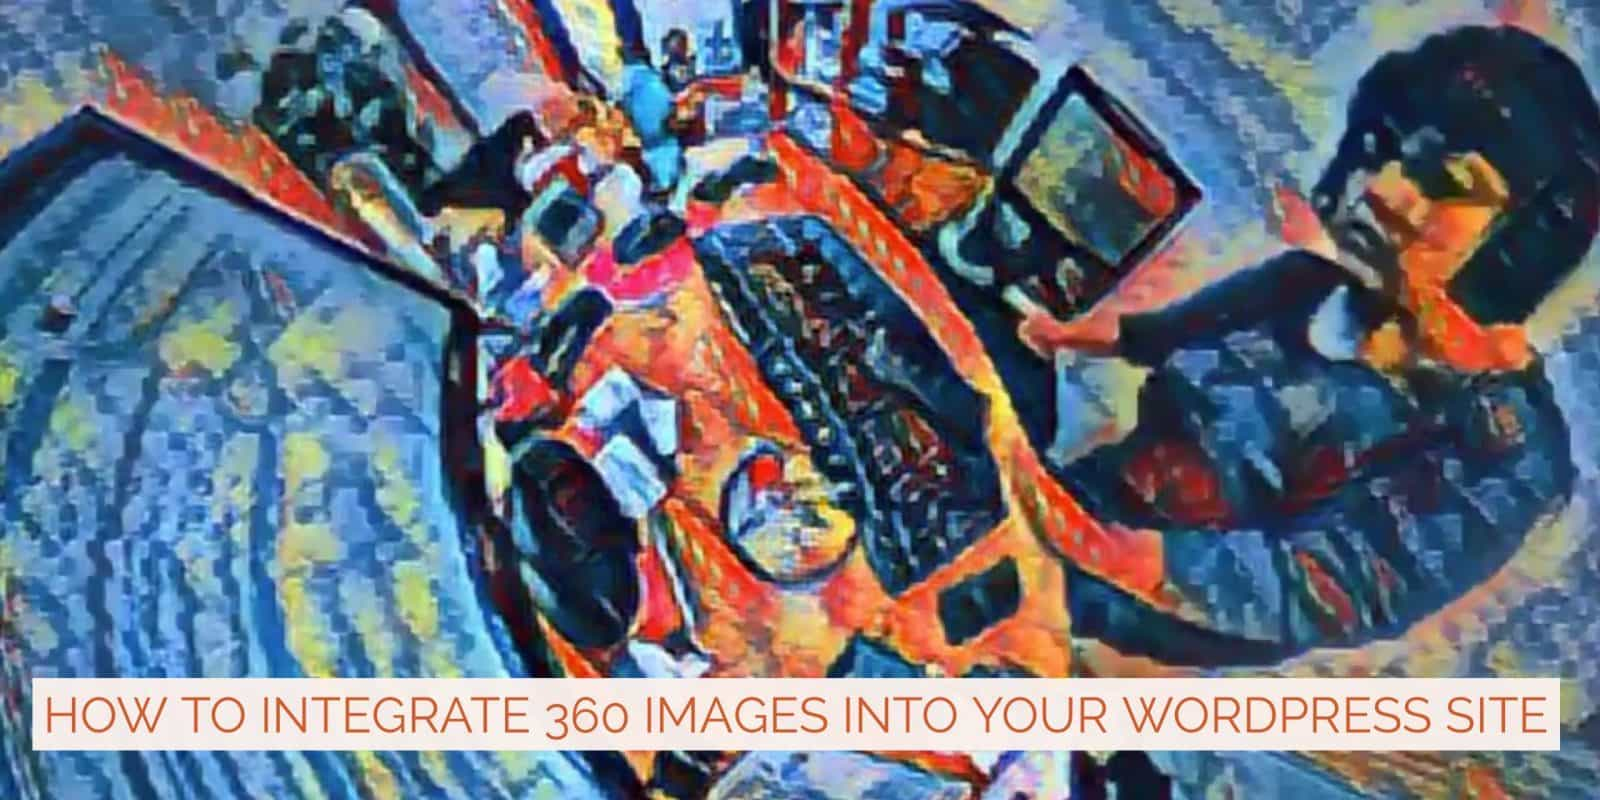 How to integrate 360 photos into your WordPress blog or website